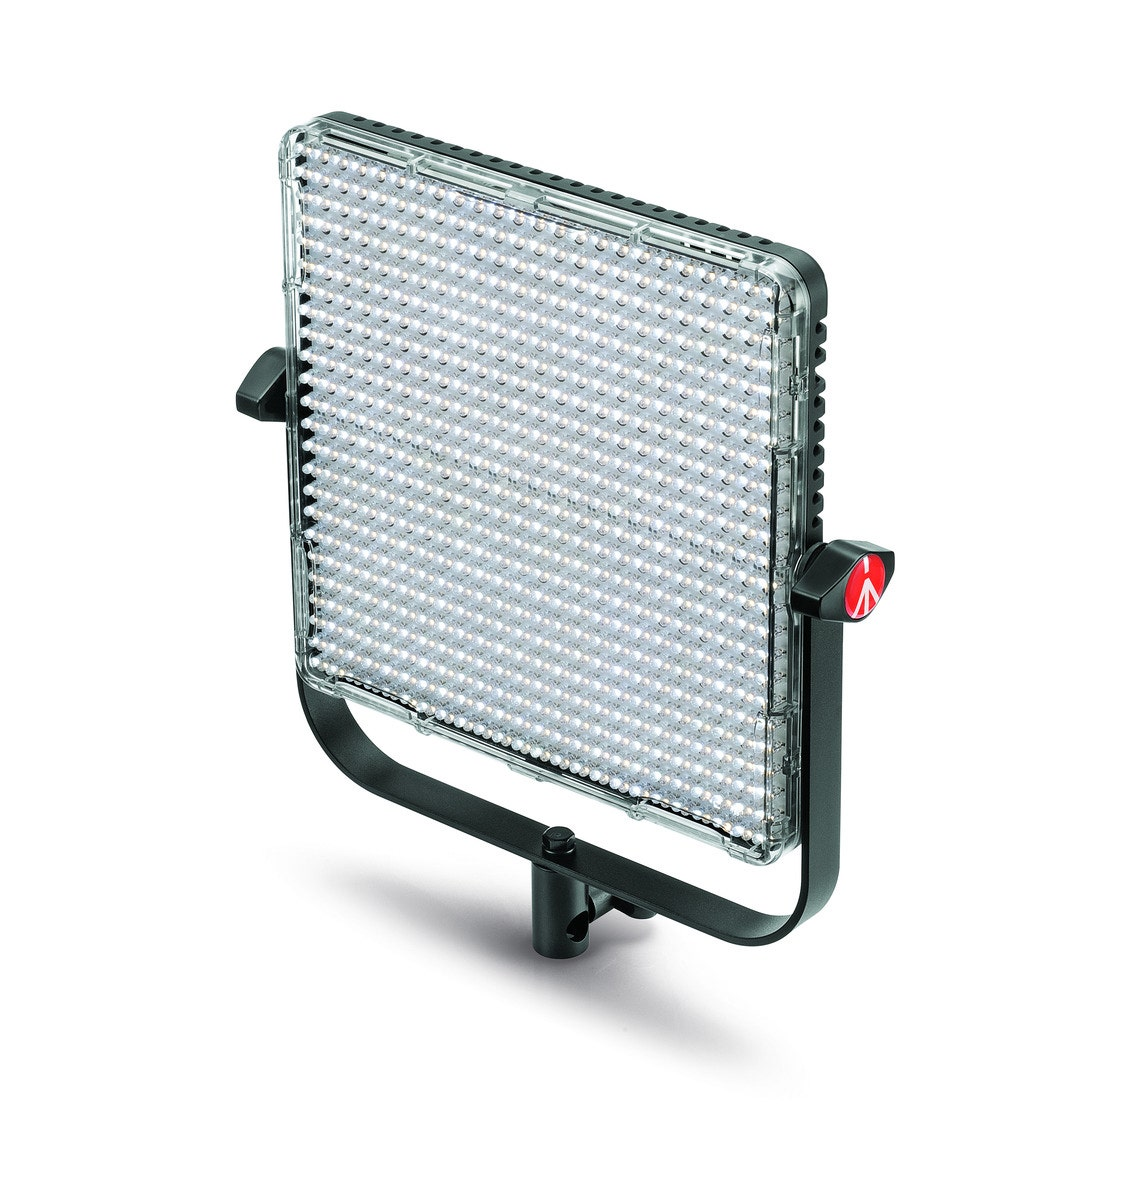 Manfrotto 1x1 Bi-Color Led Light Panel